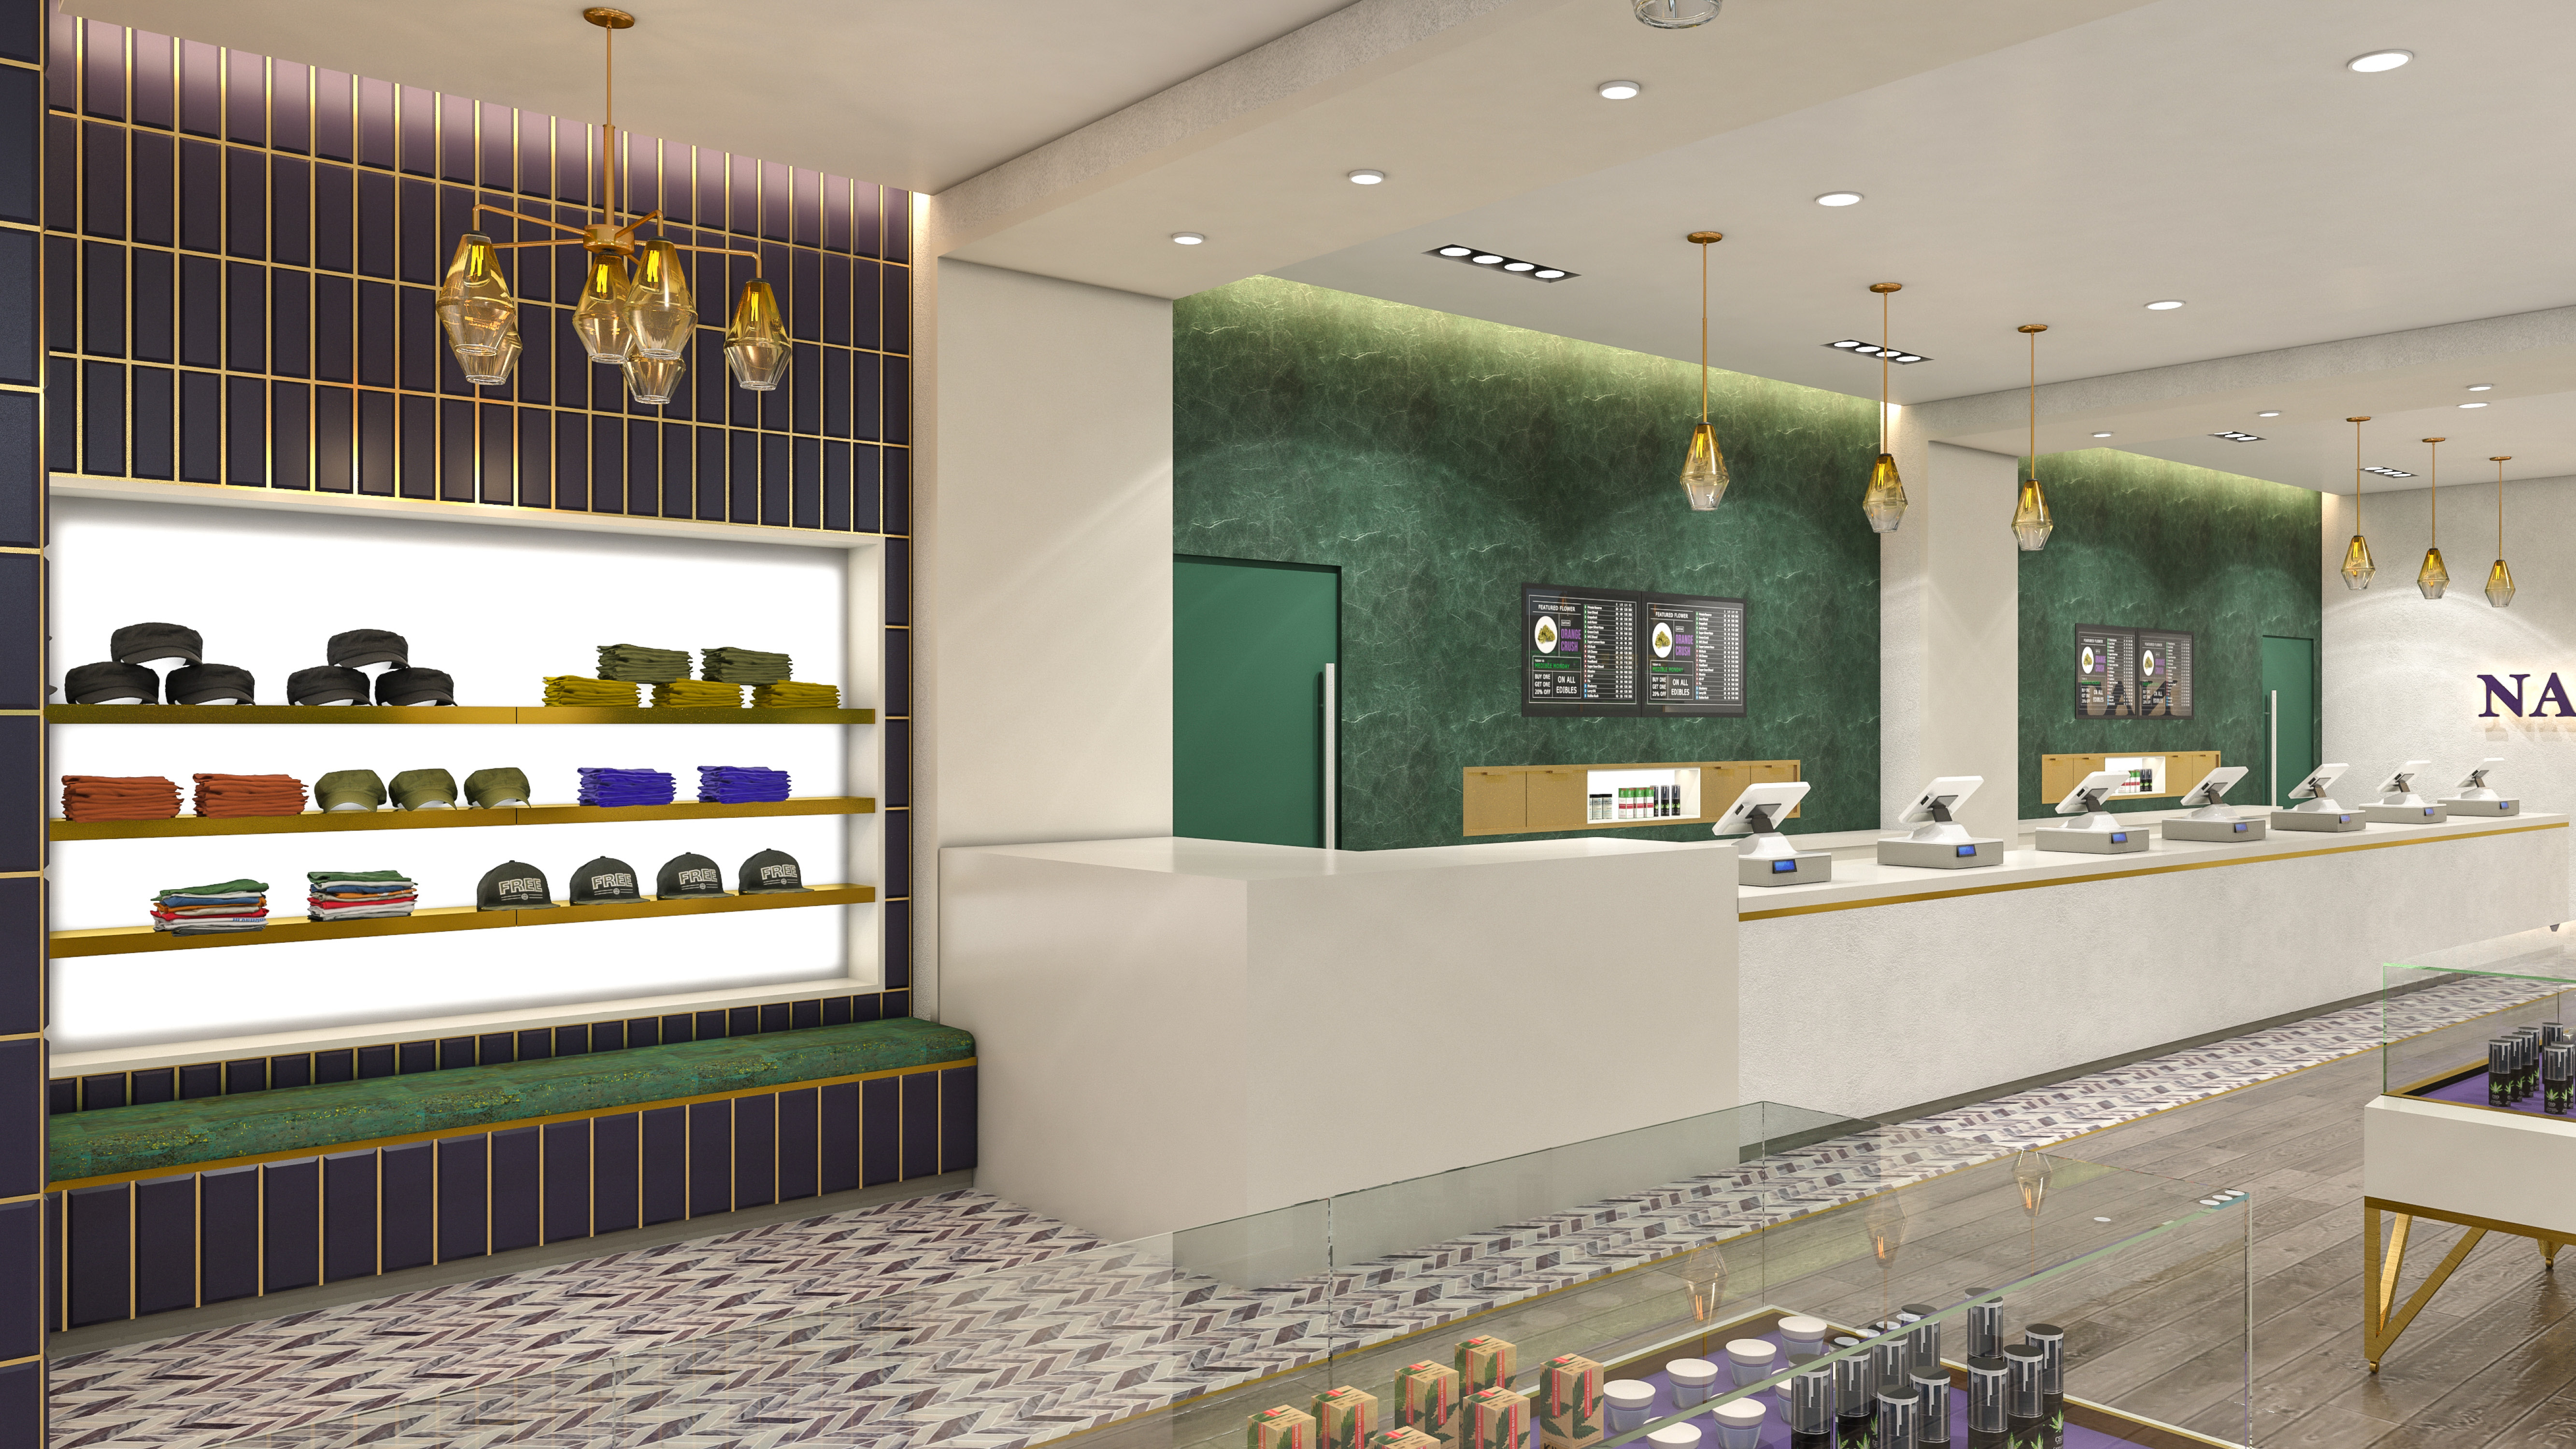 Nature's Remedy Dispensary - Signature Brand Elements Design by High Road Studio